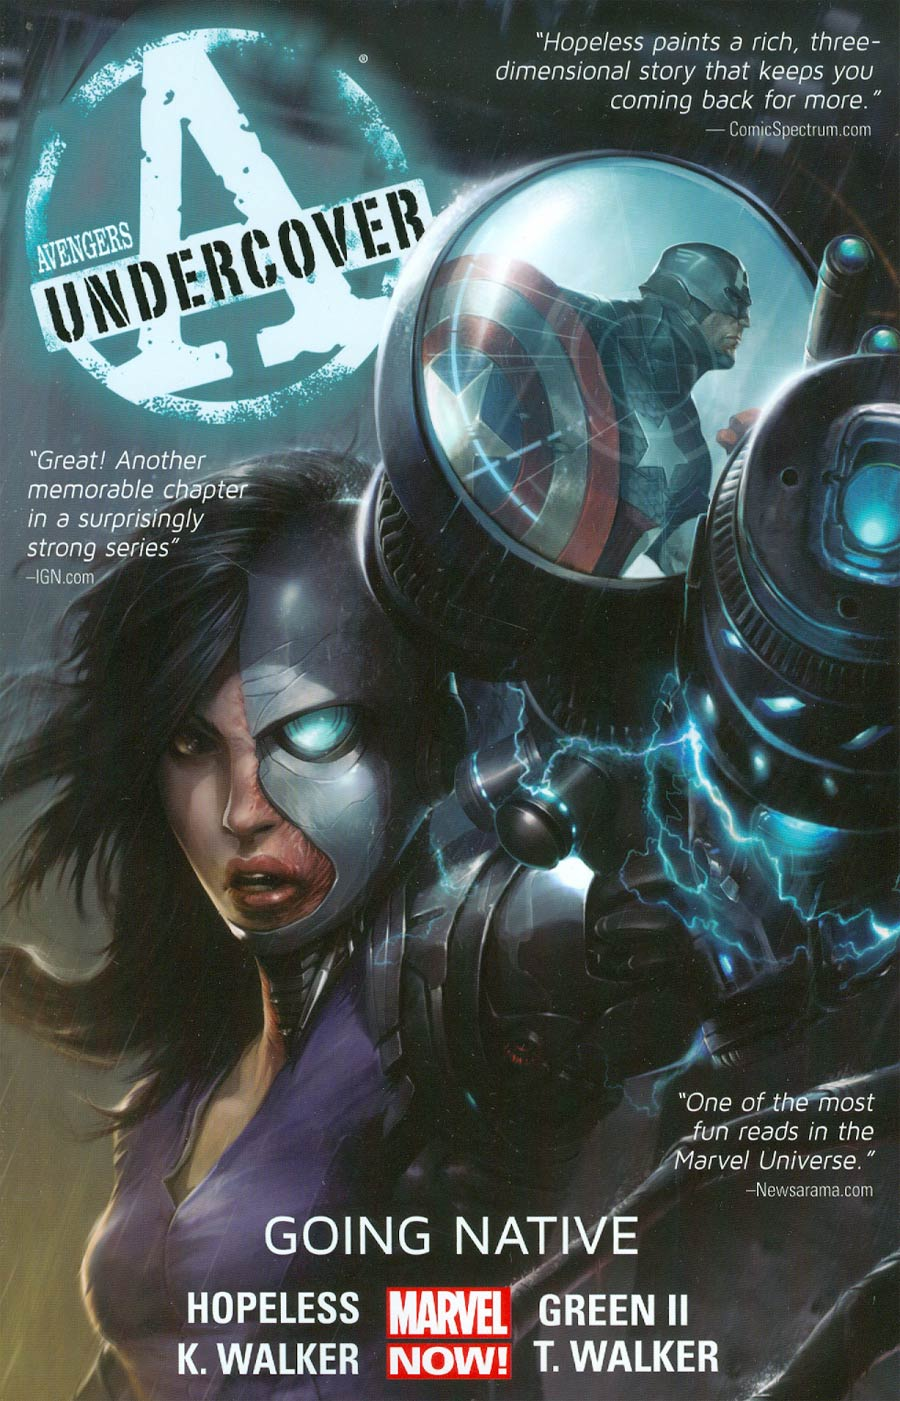 Avengers Undercover Vol 2 Going Native TP